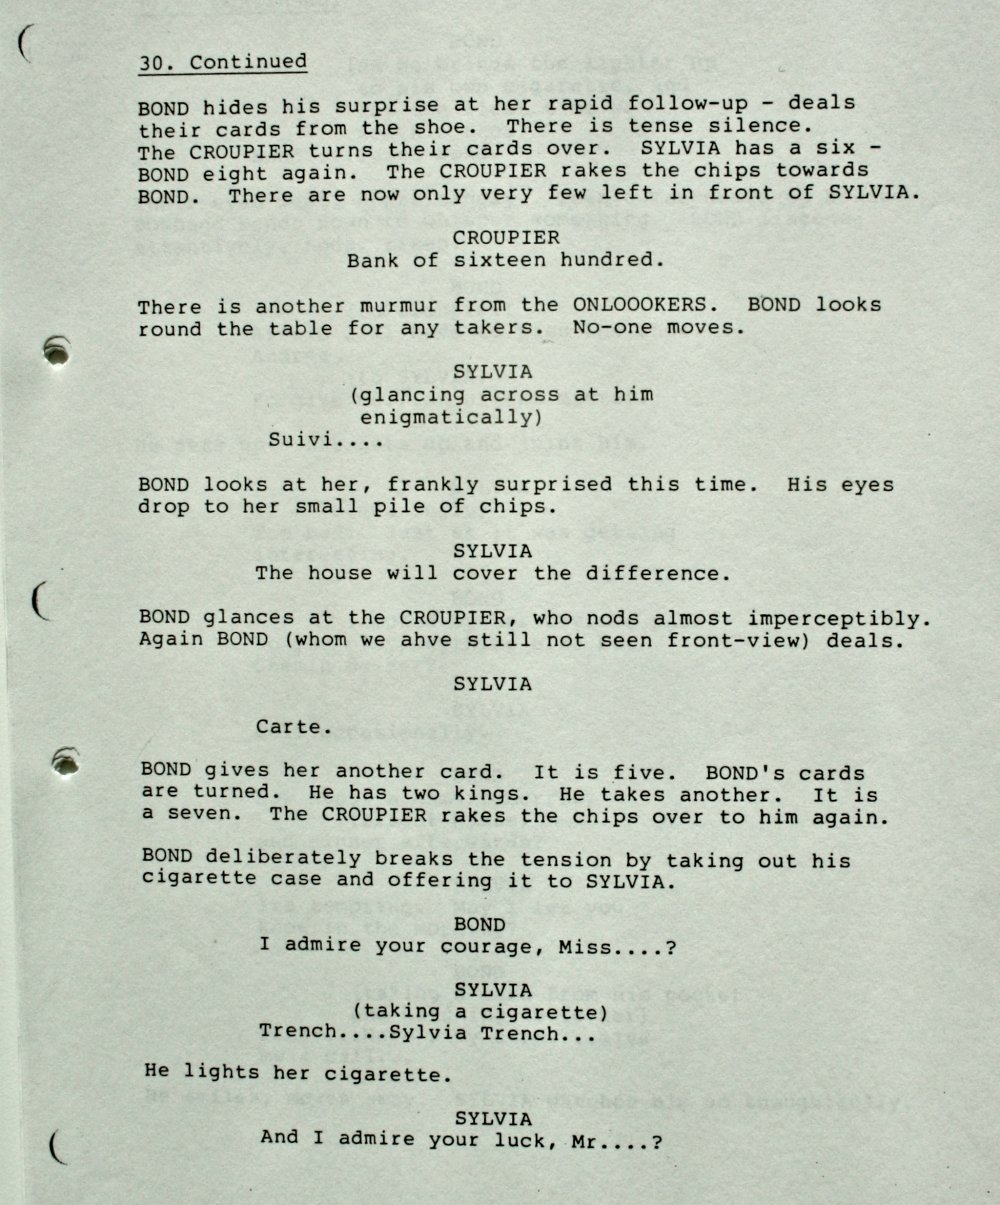 The memorable script of the womans 80th anniversary